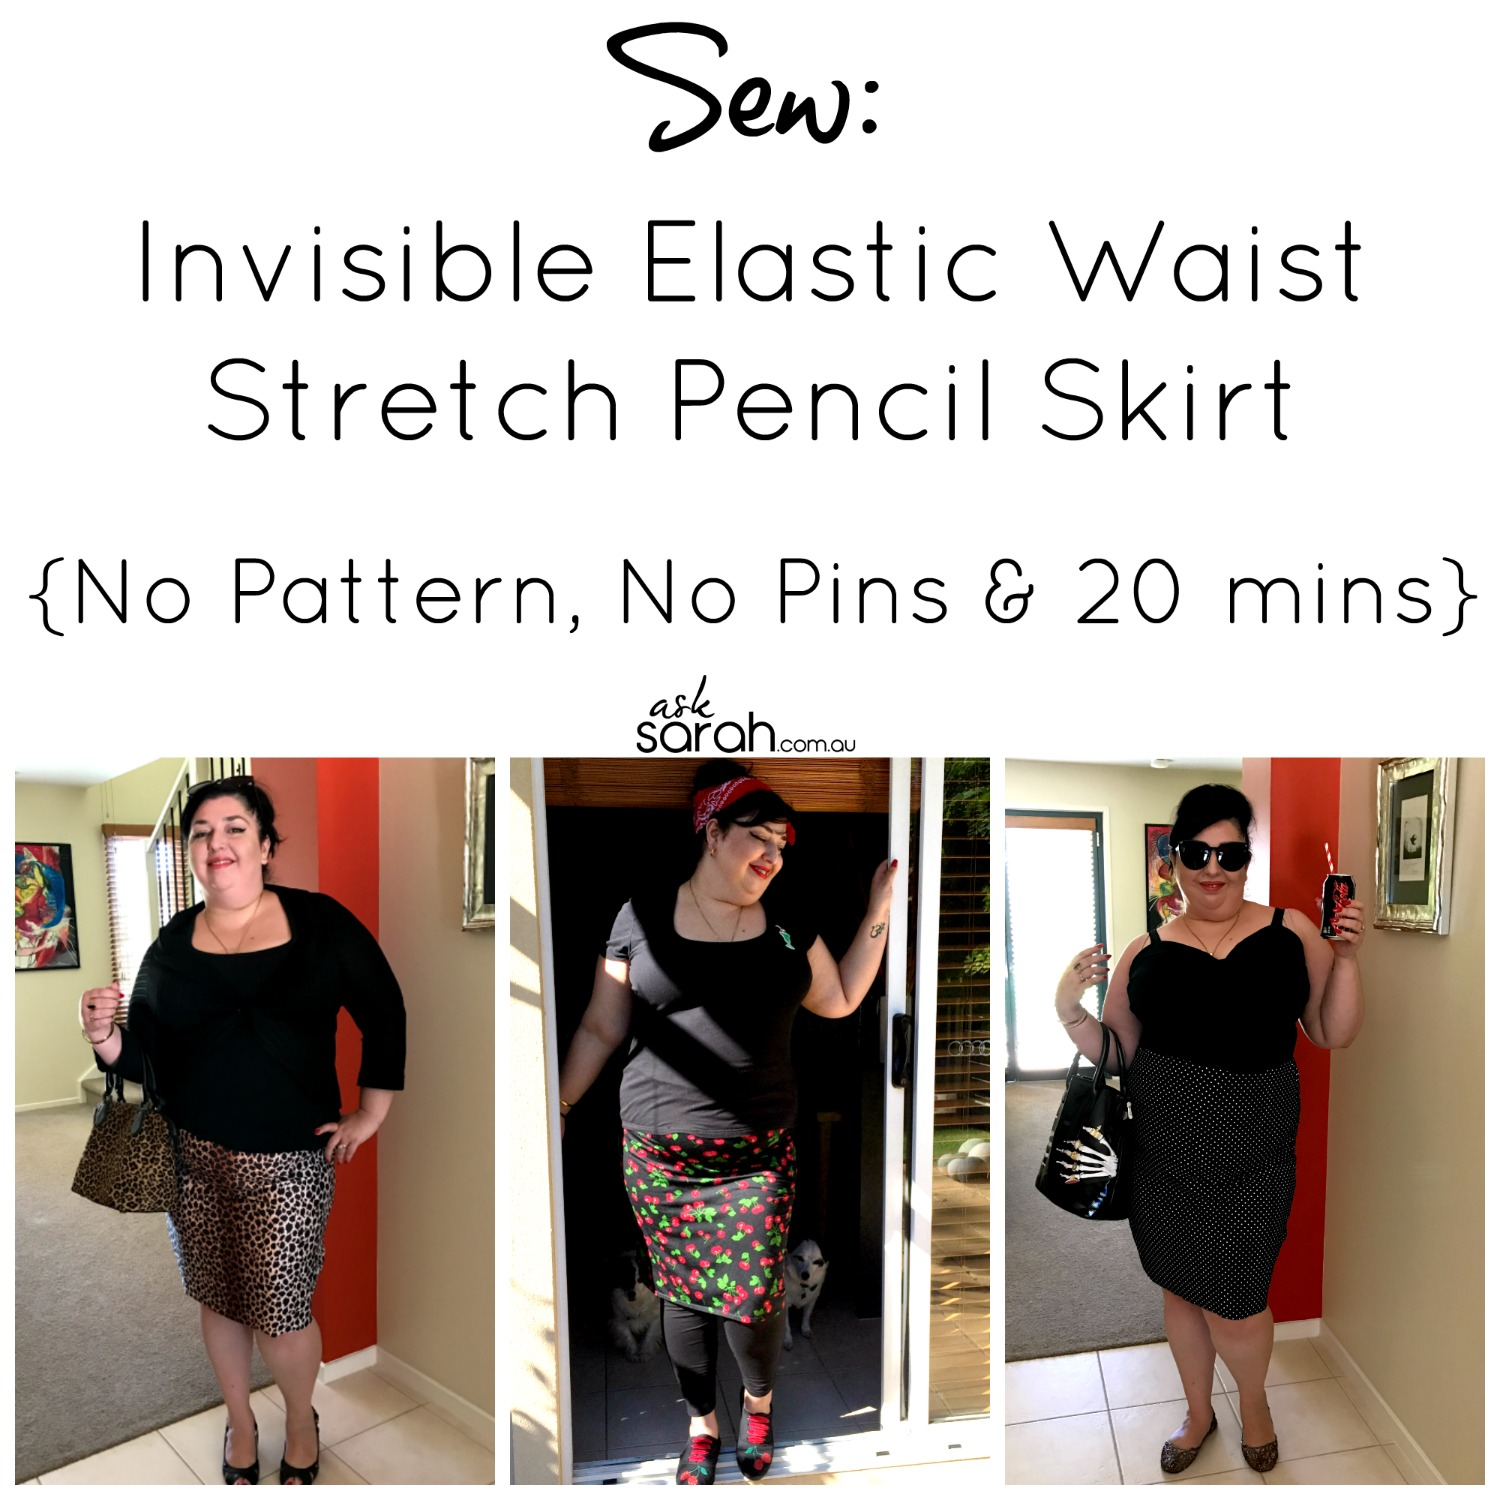 sew-invisible-elastic-waist-stretch-pencil-skirt-no-pattern-no-pins-20-mins-intro